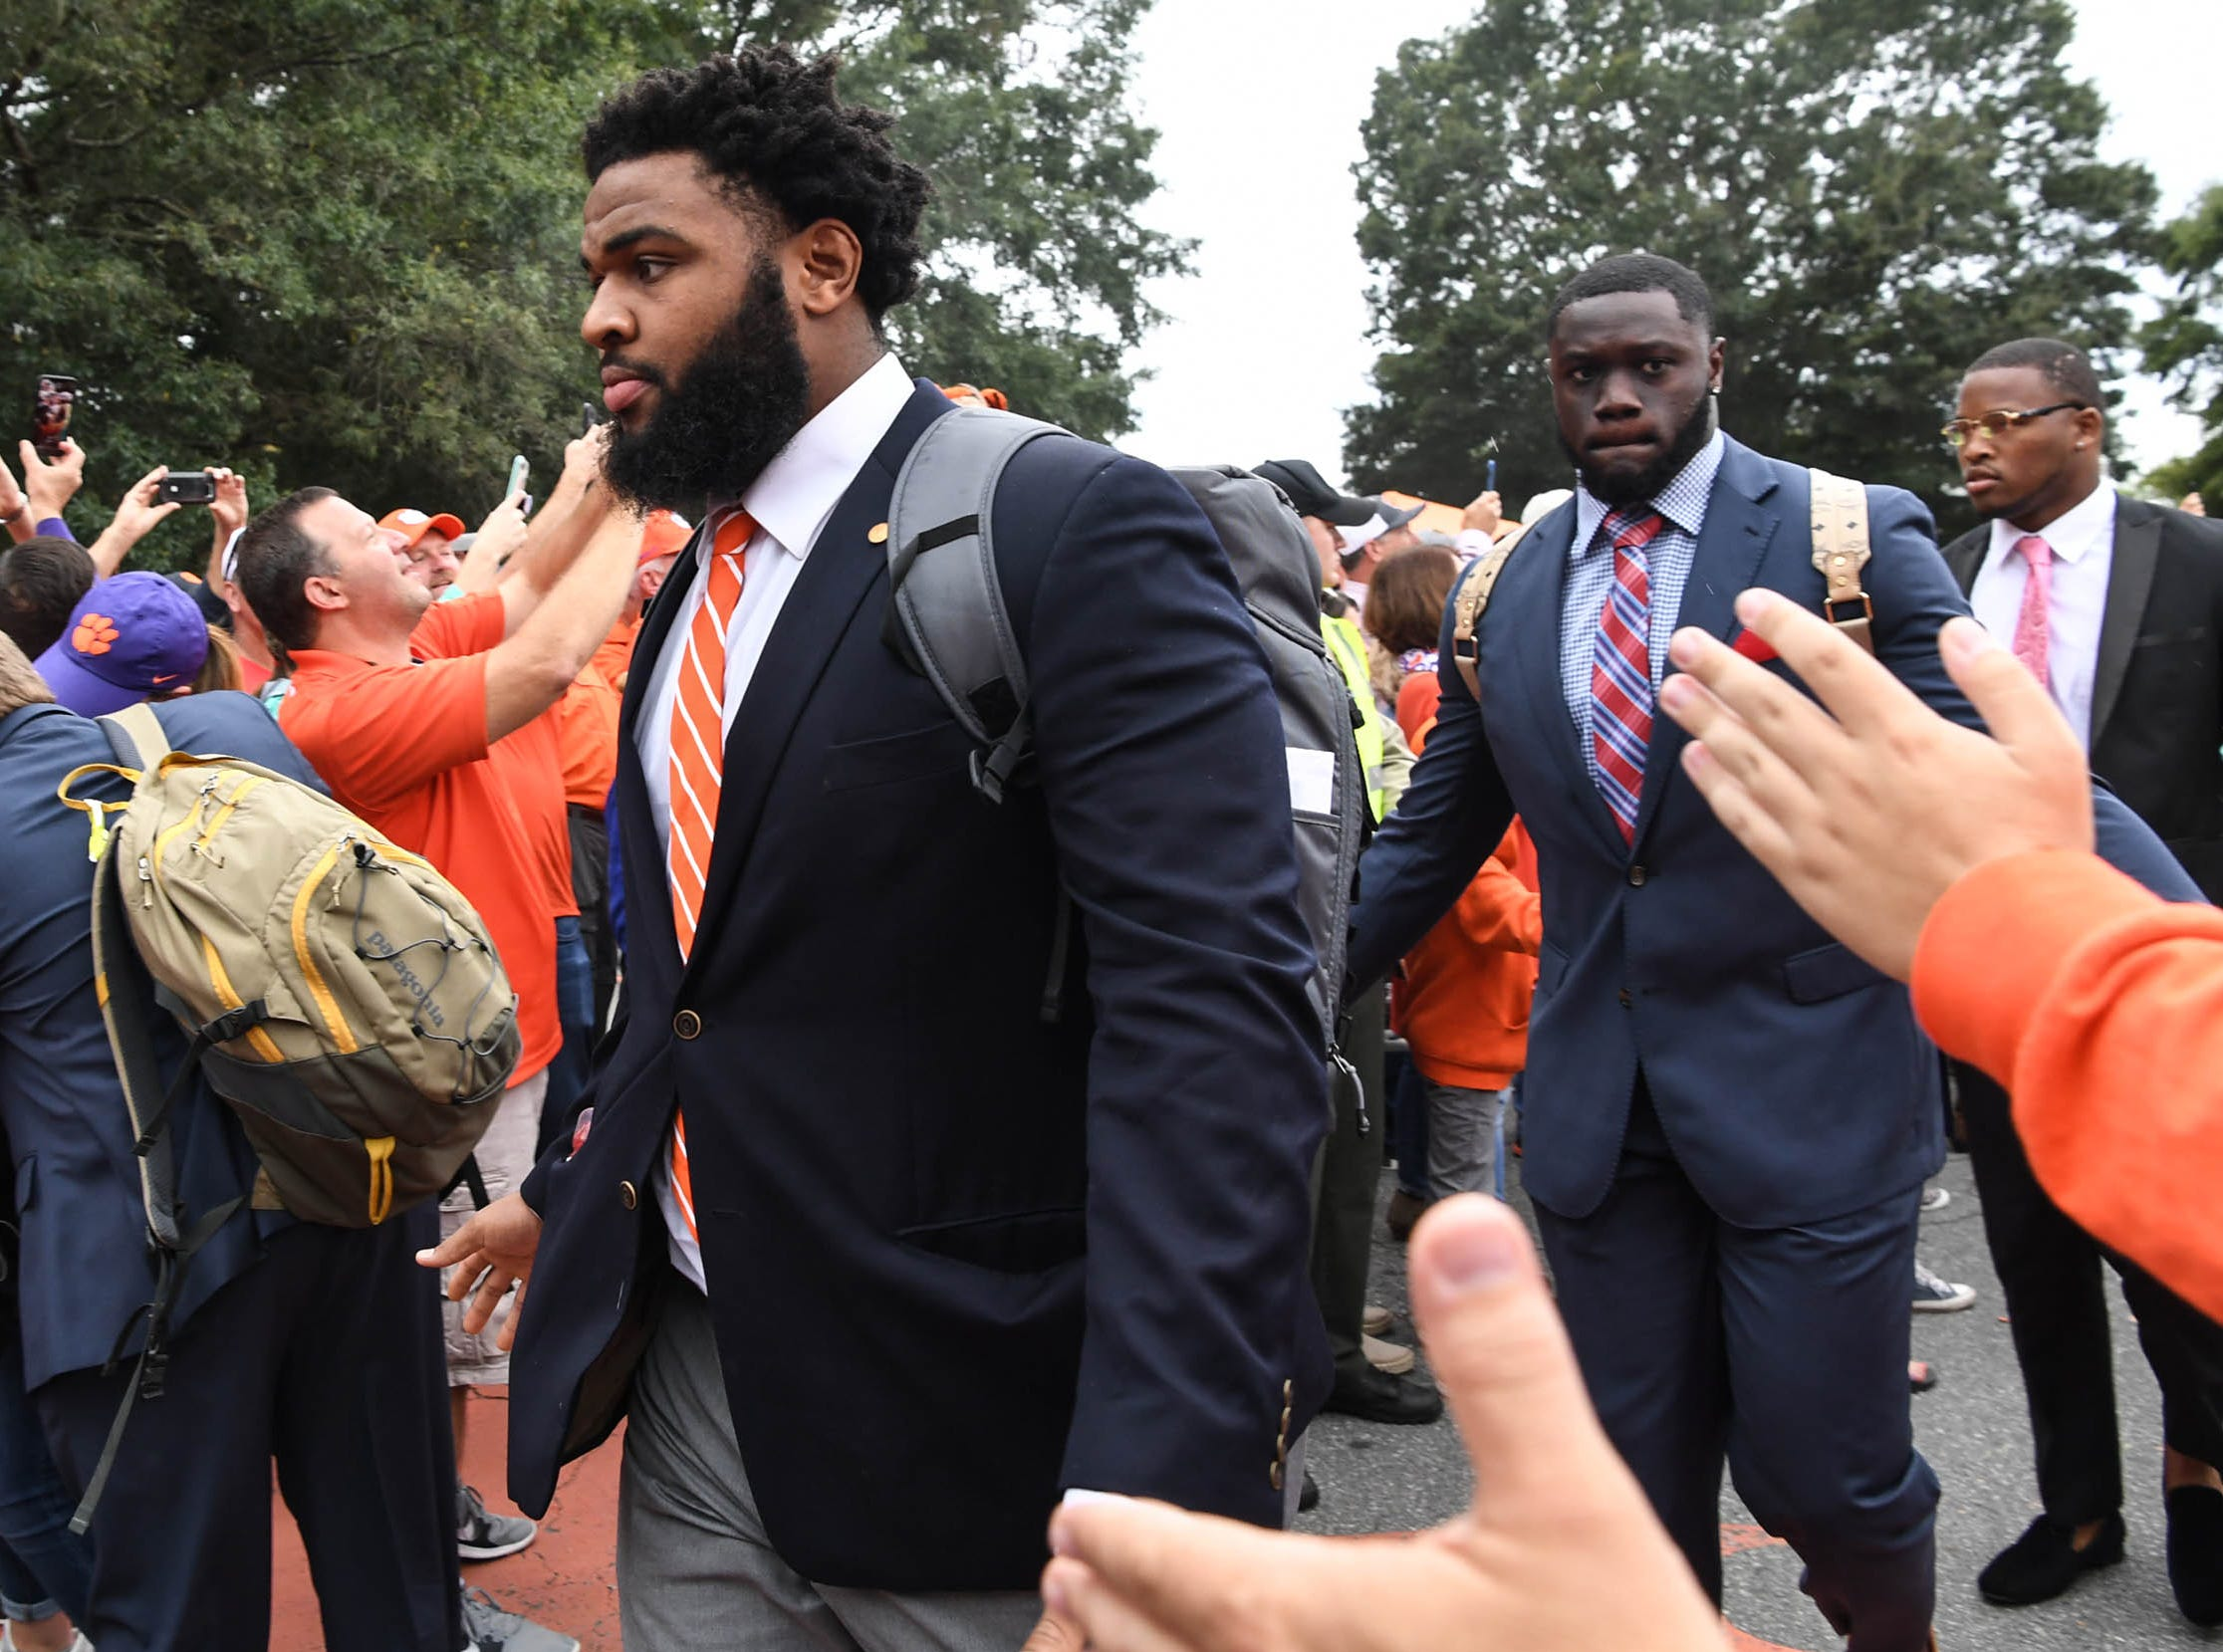 Clemson defensive lineman Christian Wilkins during Tiger Walk before the game in Memorial Stadium on Saturday, October 20, 2018.